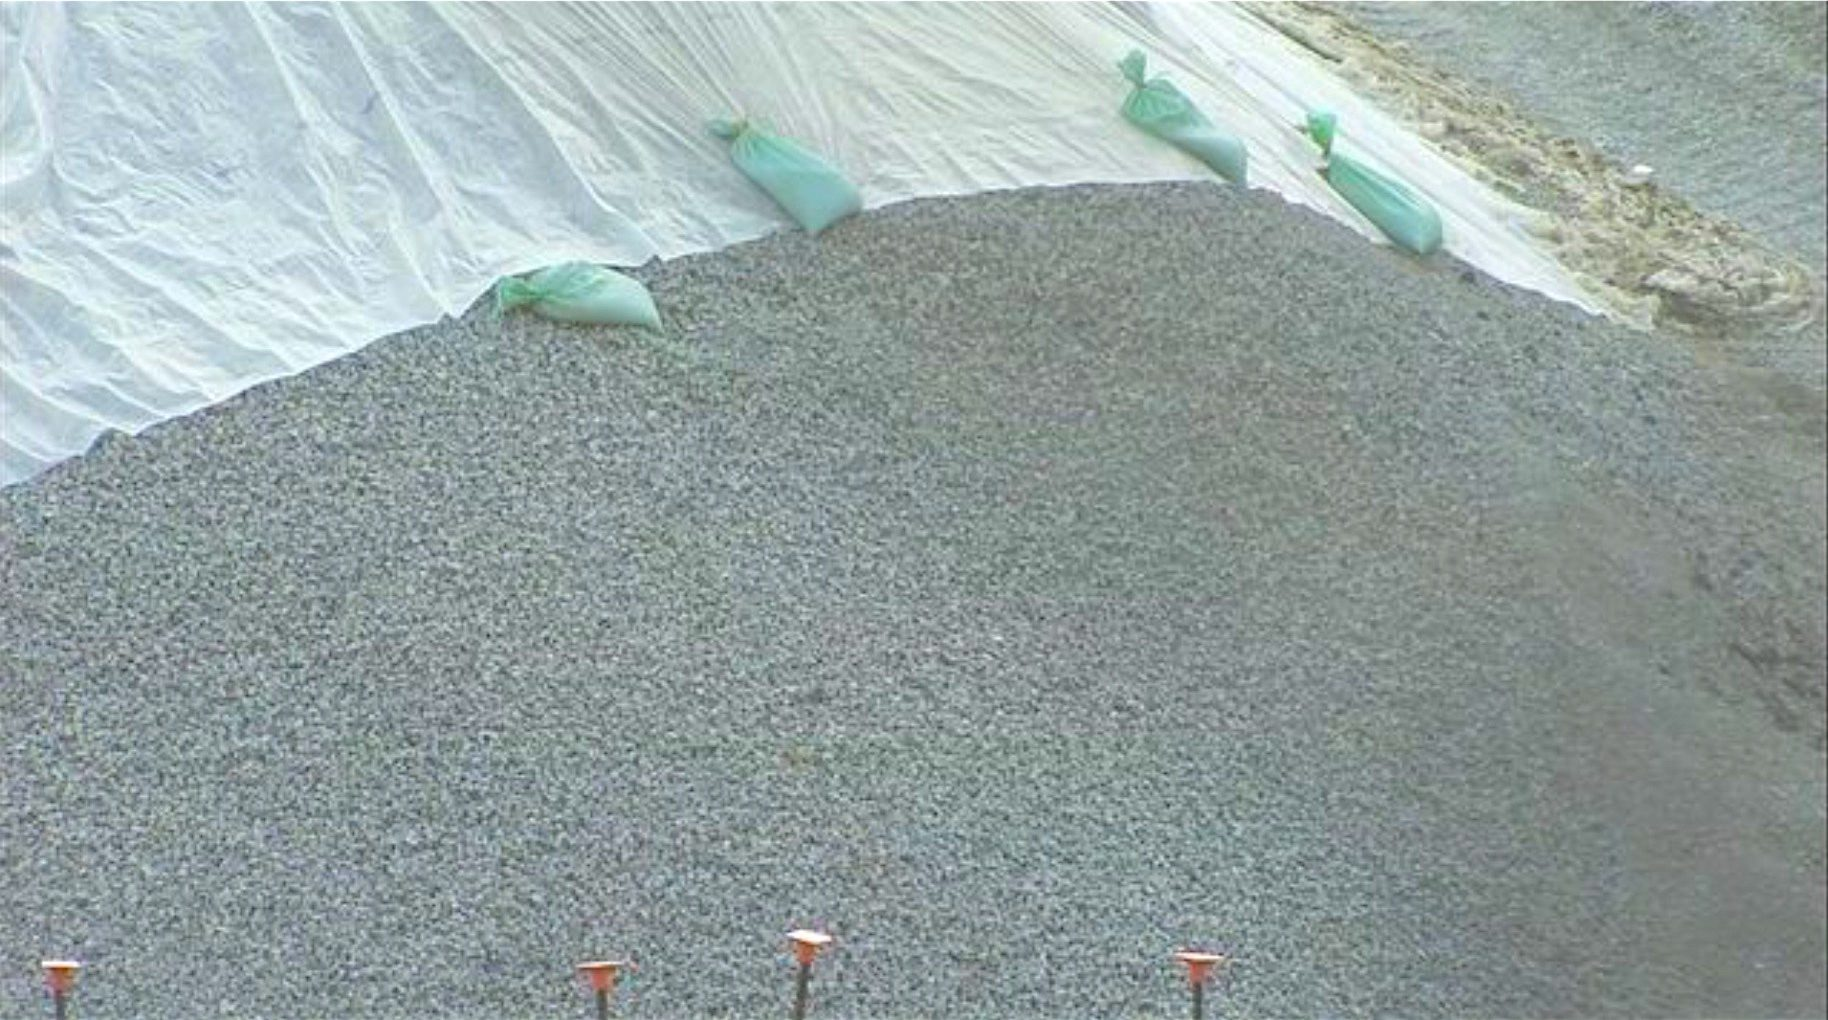 NEWS VIDEO: Washington DOT (WSDOT), USA Using Recycled Concrete in I-5 Road Project